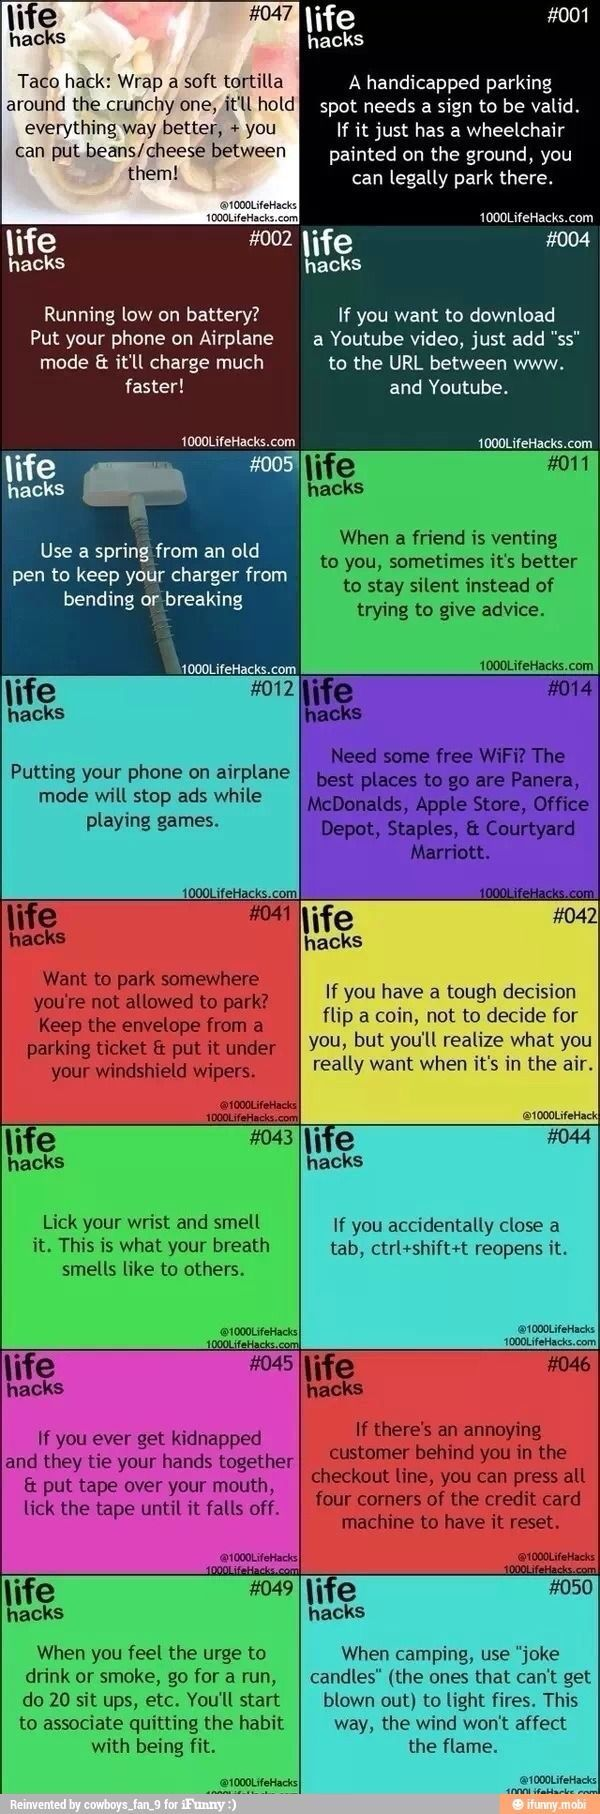 I will definitely use these! Especially the one where you lick your wrist to see what your breath smells like. Lol!!